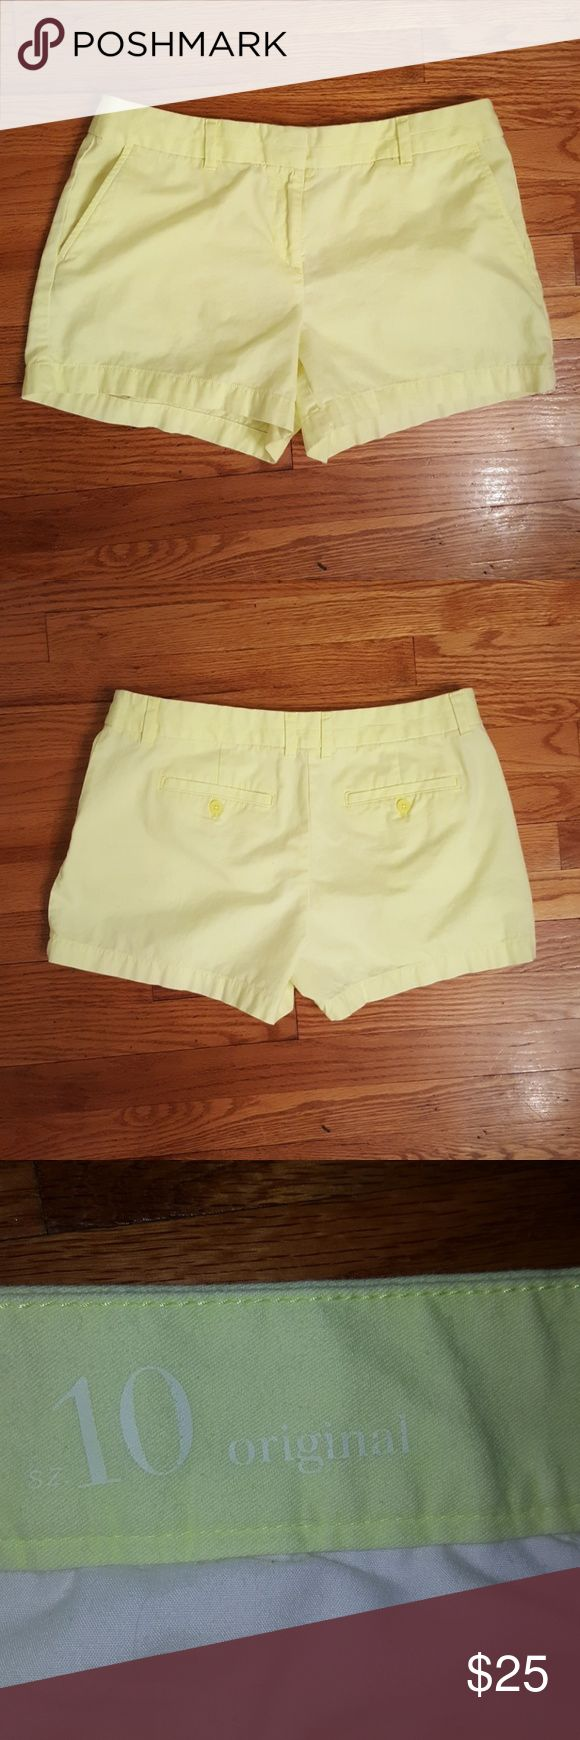 "EUC Ann Taylor LOFT neon yellow shorts Worn once. In excellent condition. Super duper soft too!! Color is a soft neon yellow - it looks very sunwashed and happy.  Fit like a true size 10. Inseam 3.5"", approx 12"" leg opening, waist 16.5"" (flat).  Non-smoking home, offers welcome but lowballs will be ignored. LOFT Shorts"